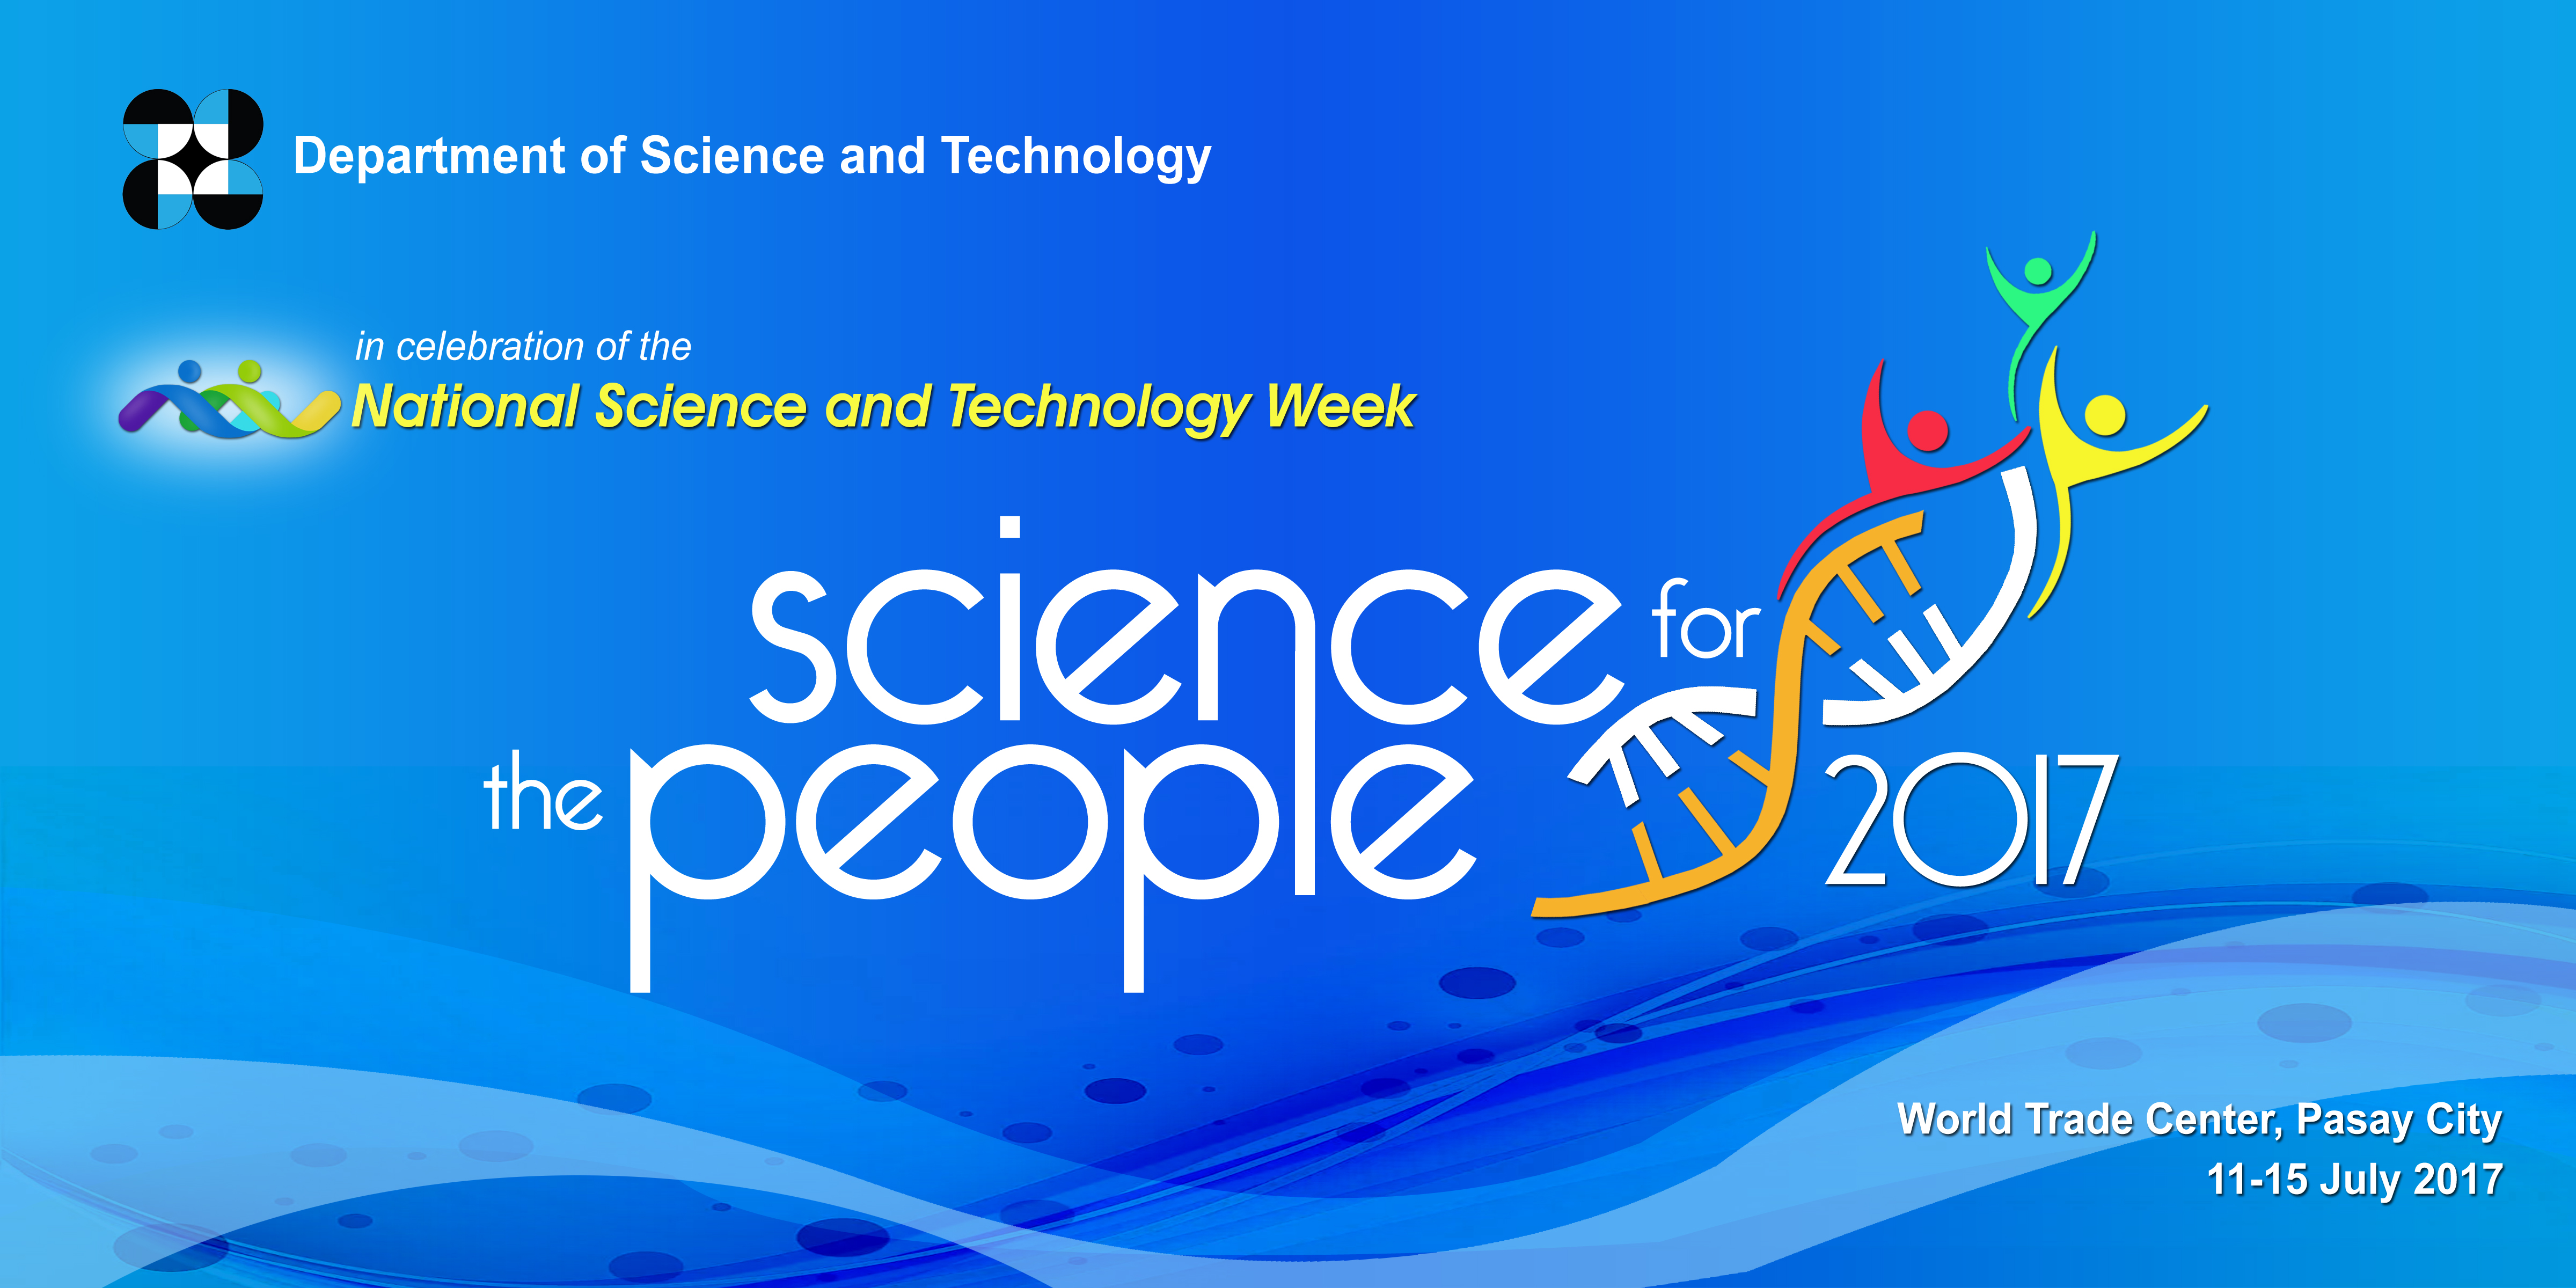 DOST National Science and Technology Week